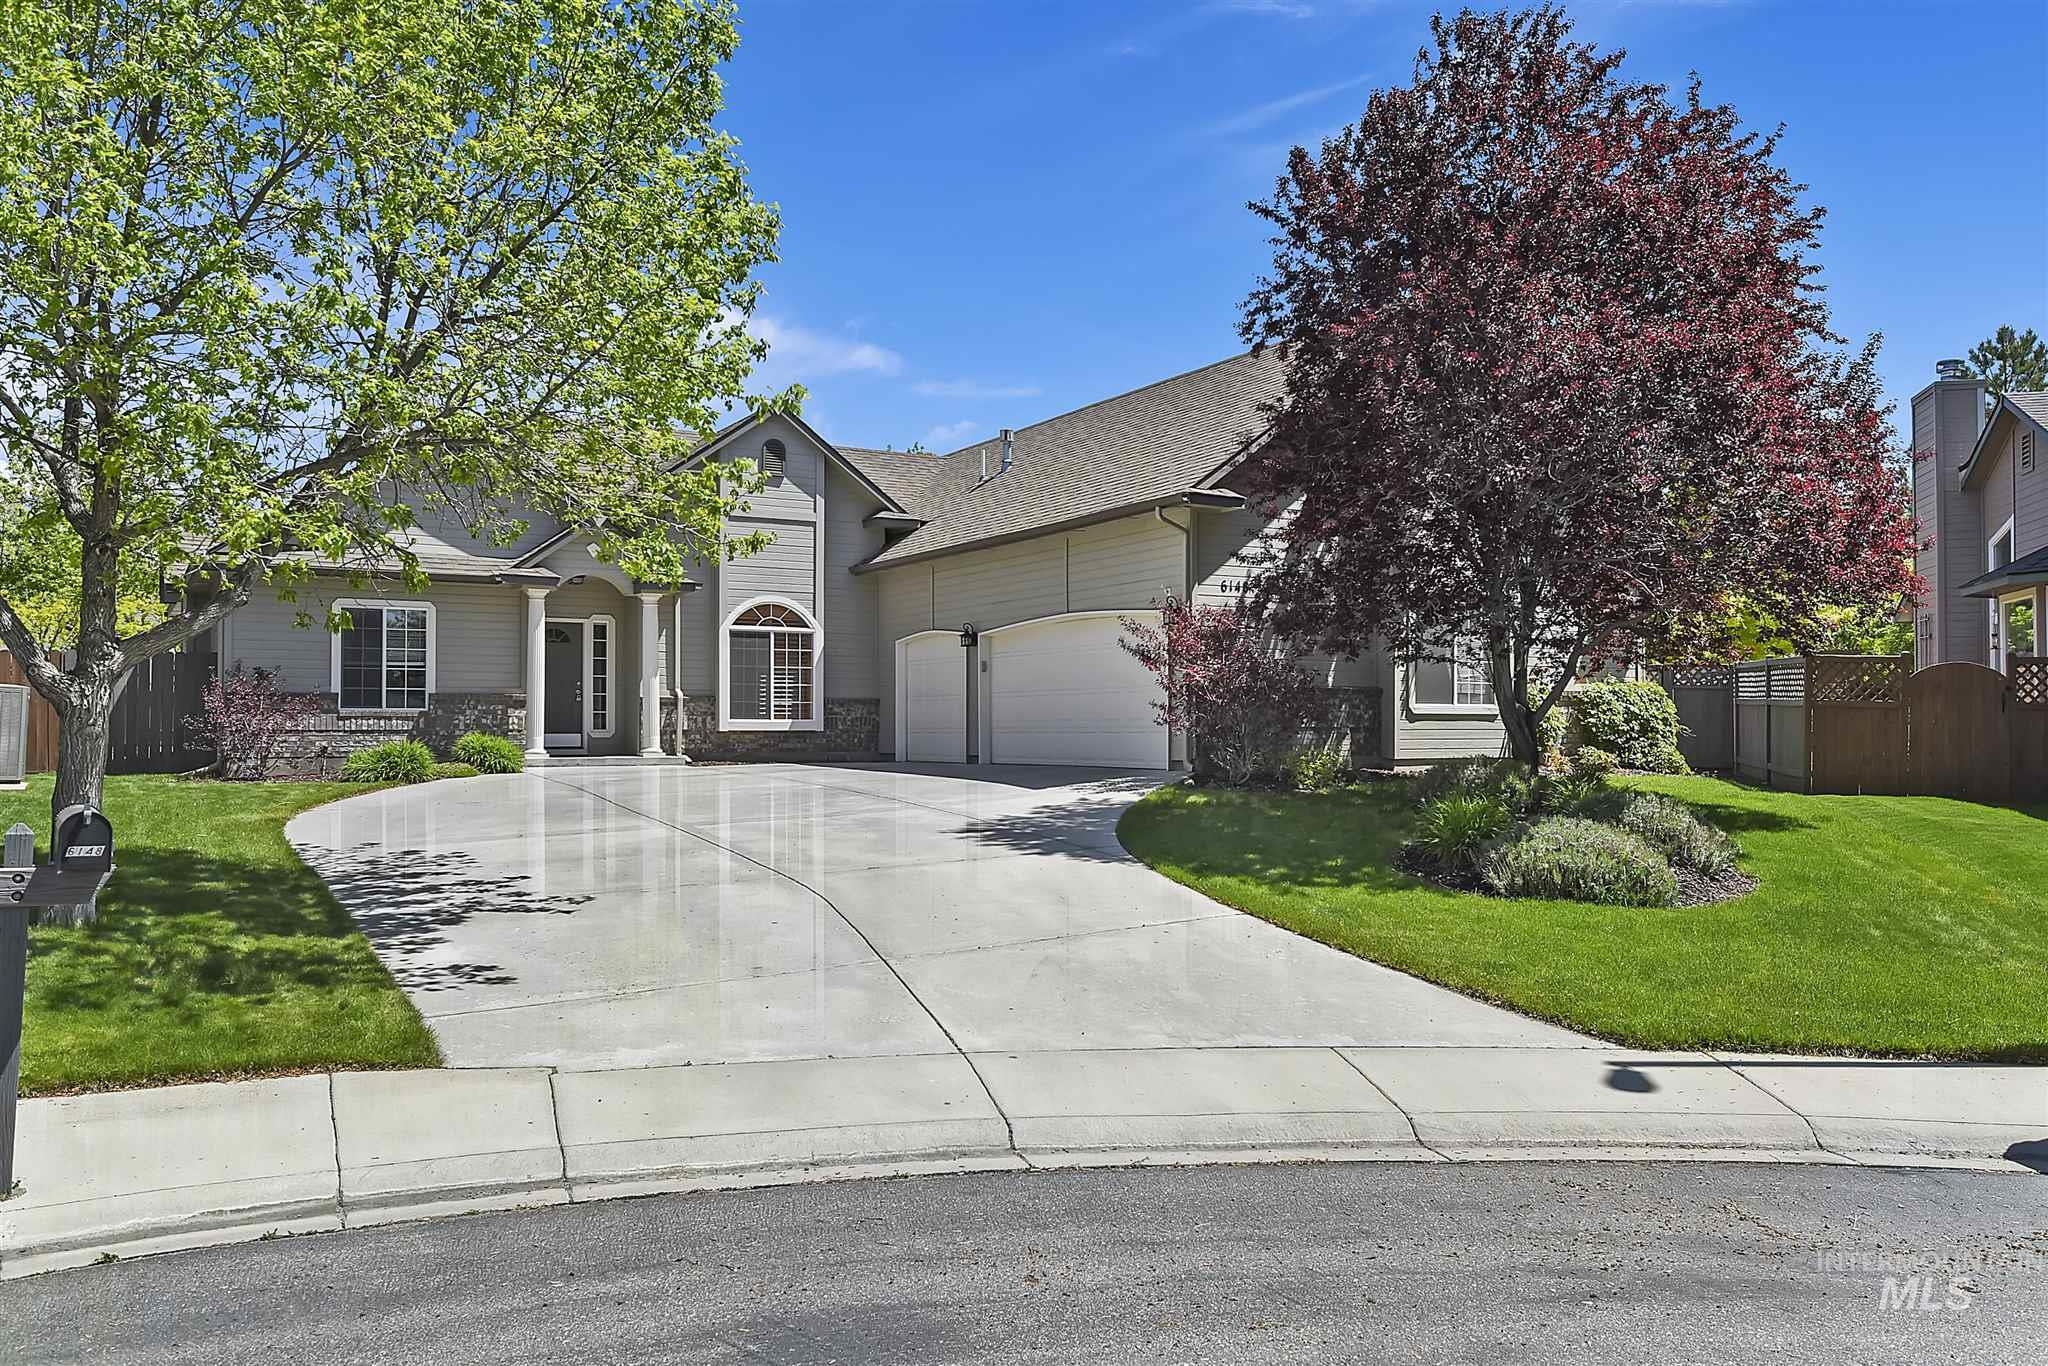 6148 S Basalt Trail Property Photo - Boise, ID real estate listing